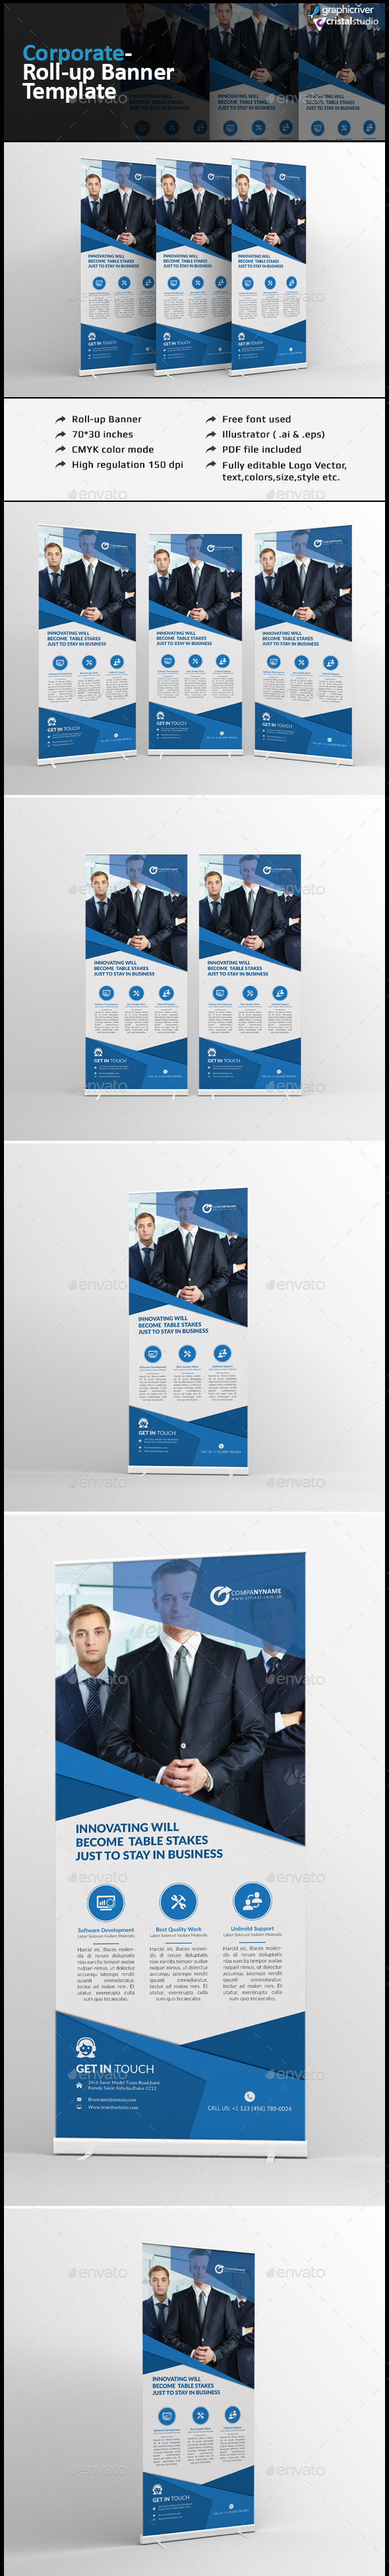 Roll Up Banner Template - Signage Print Templates